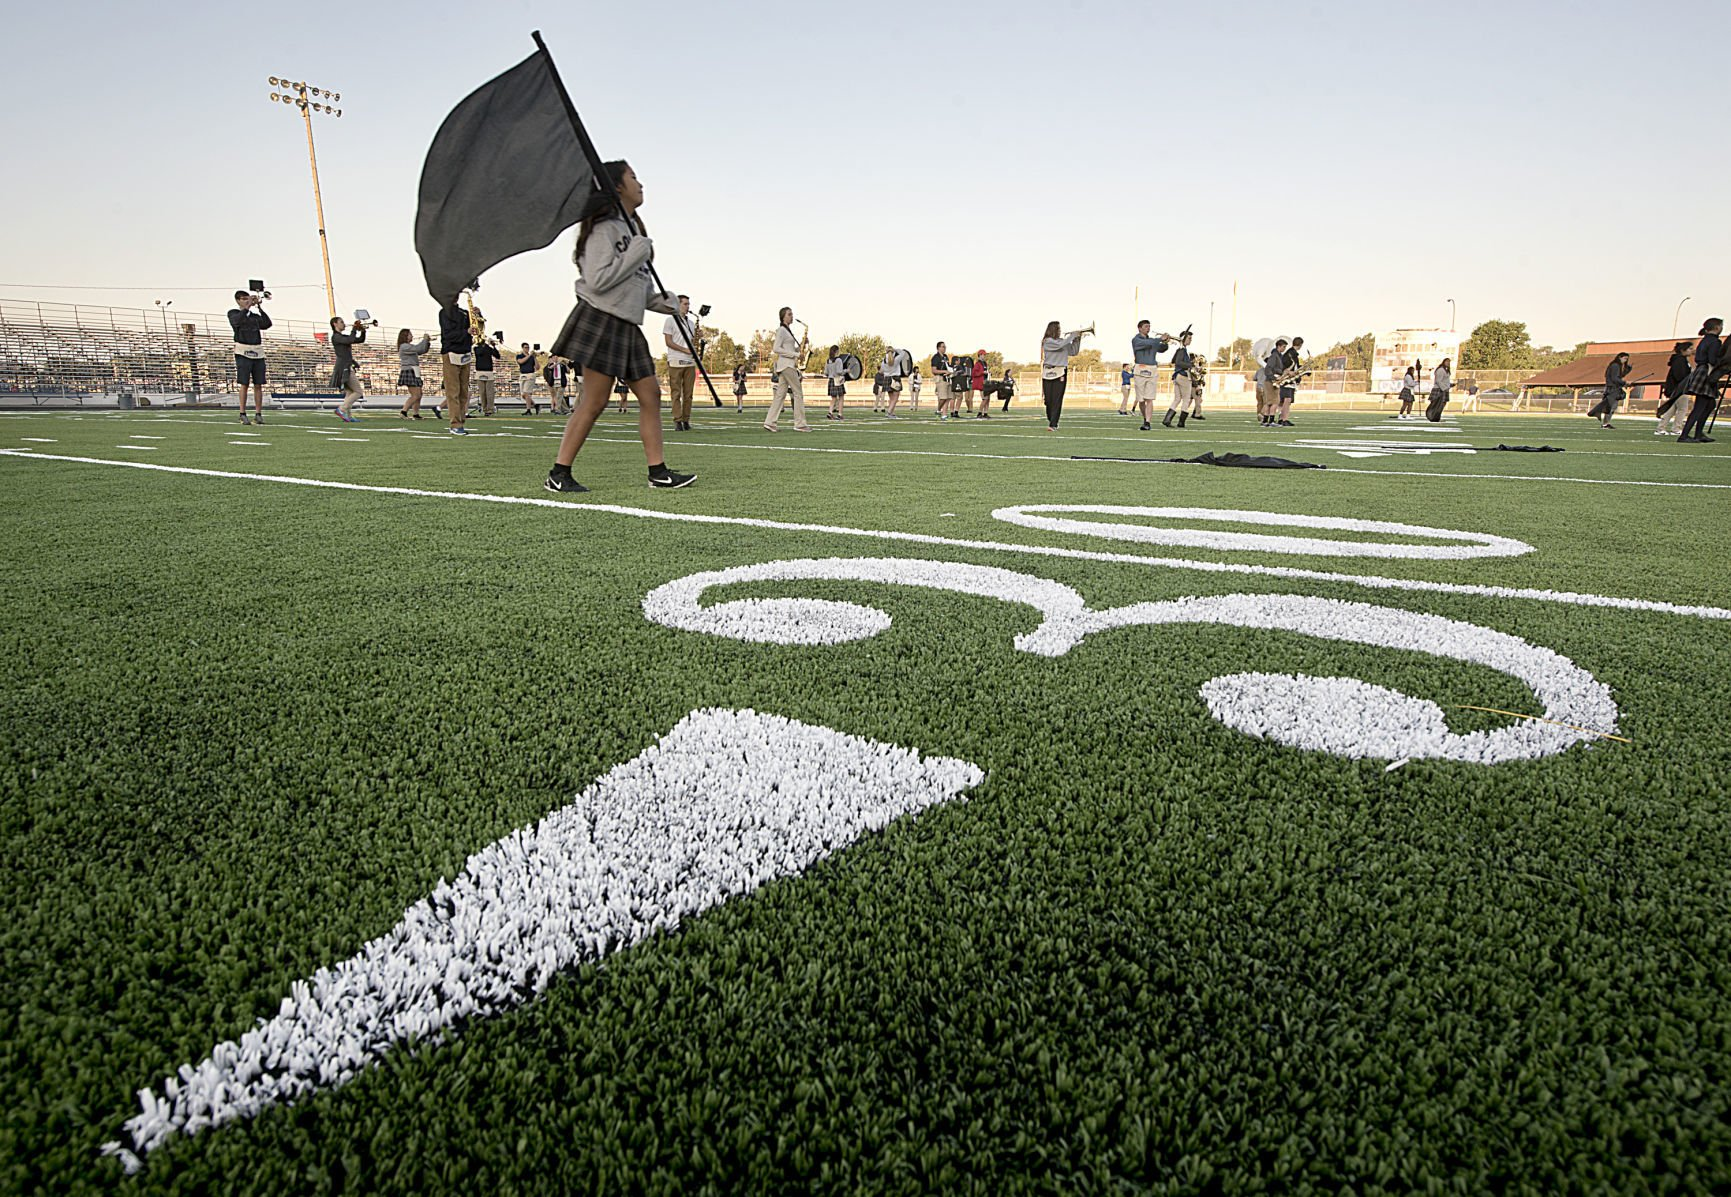 artificial football turf. Increasing Number Of Schools Choosing Turf Over Grass | Education Siouxcityjournal.com Artificial Football